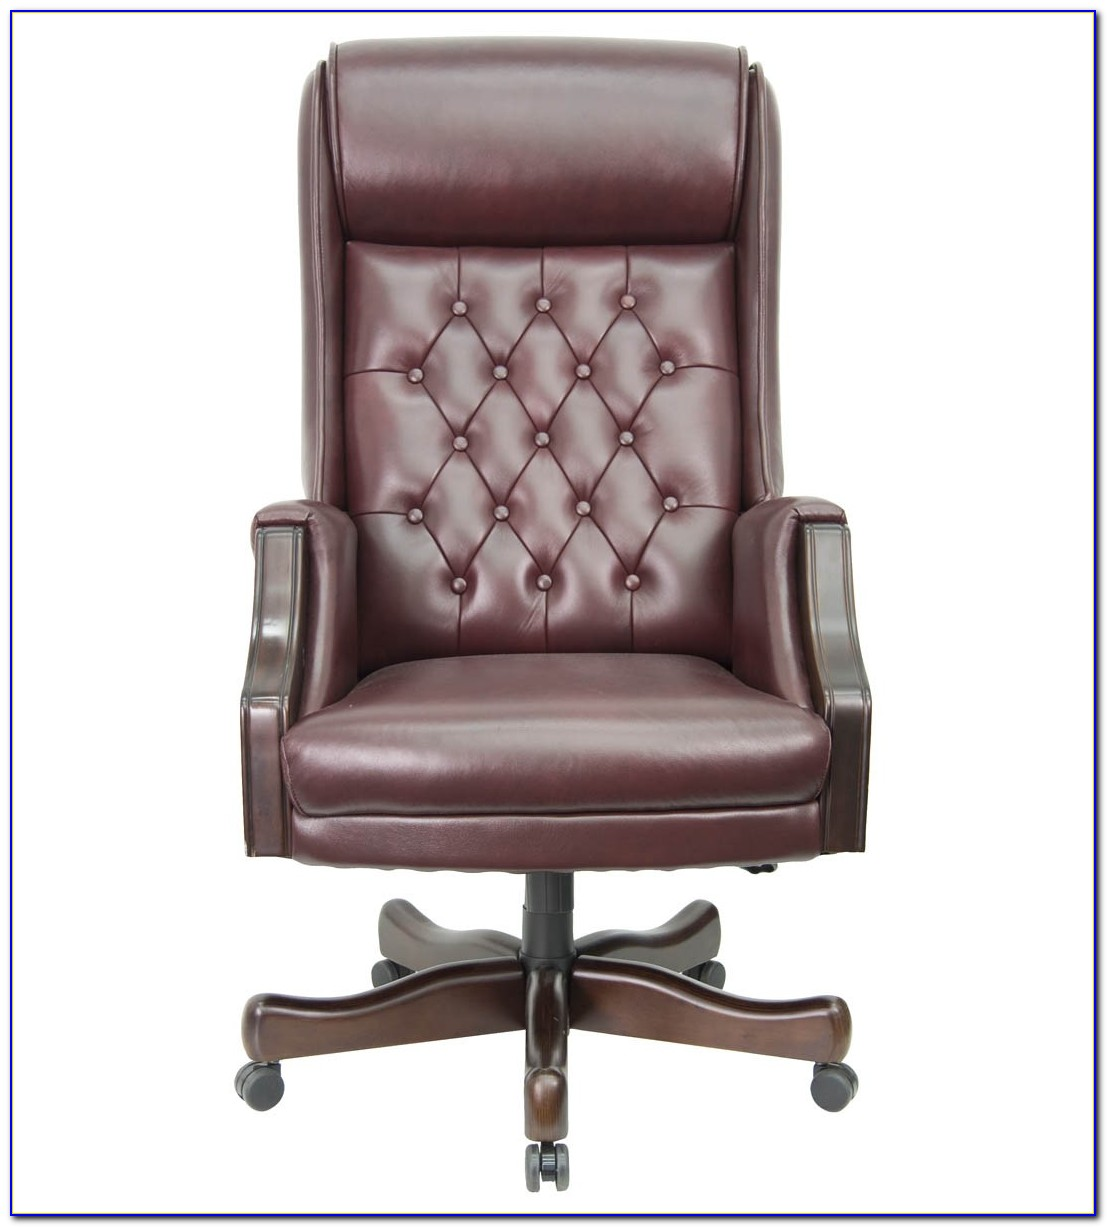 Brown leather tufted desk chair desk home design ideas for Tufted leather chair design